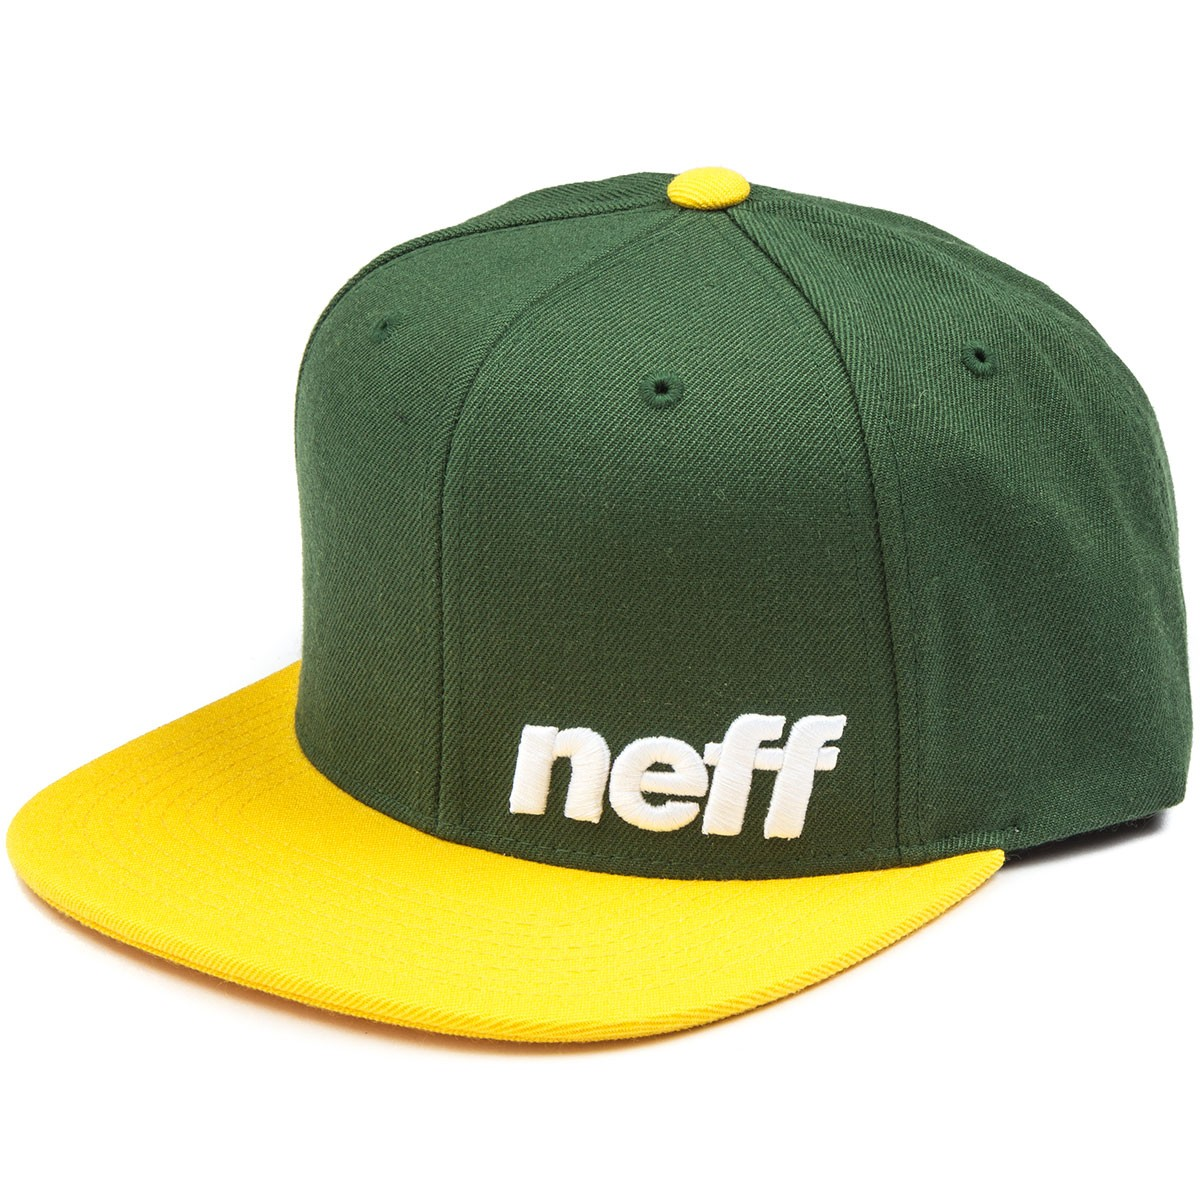 Neff Daily Hat - Green/Gold